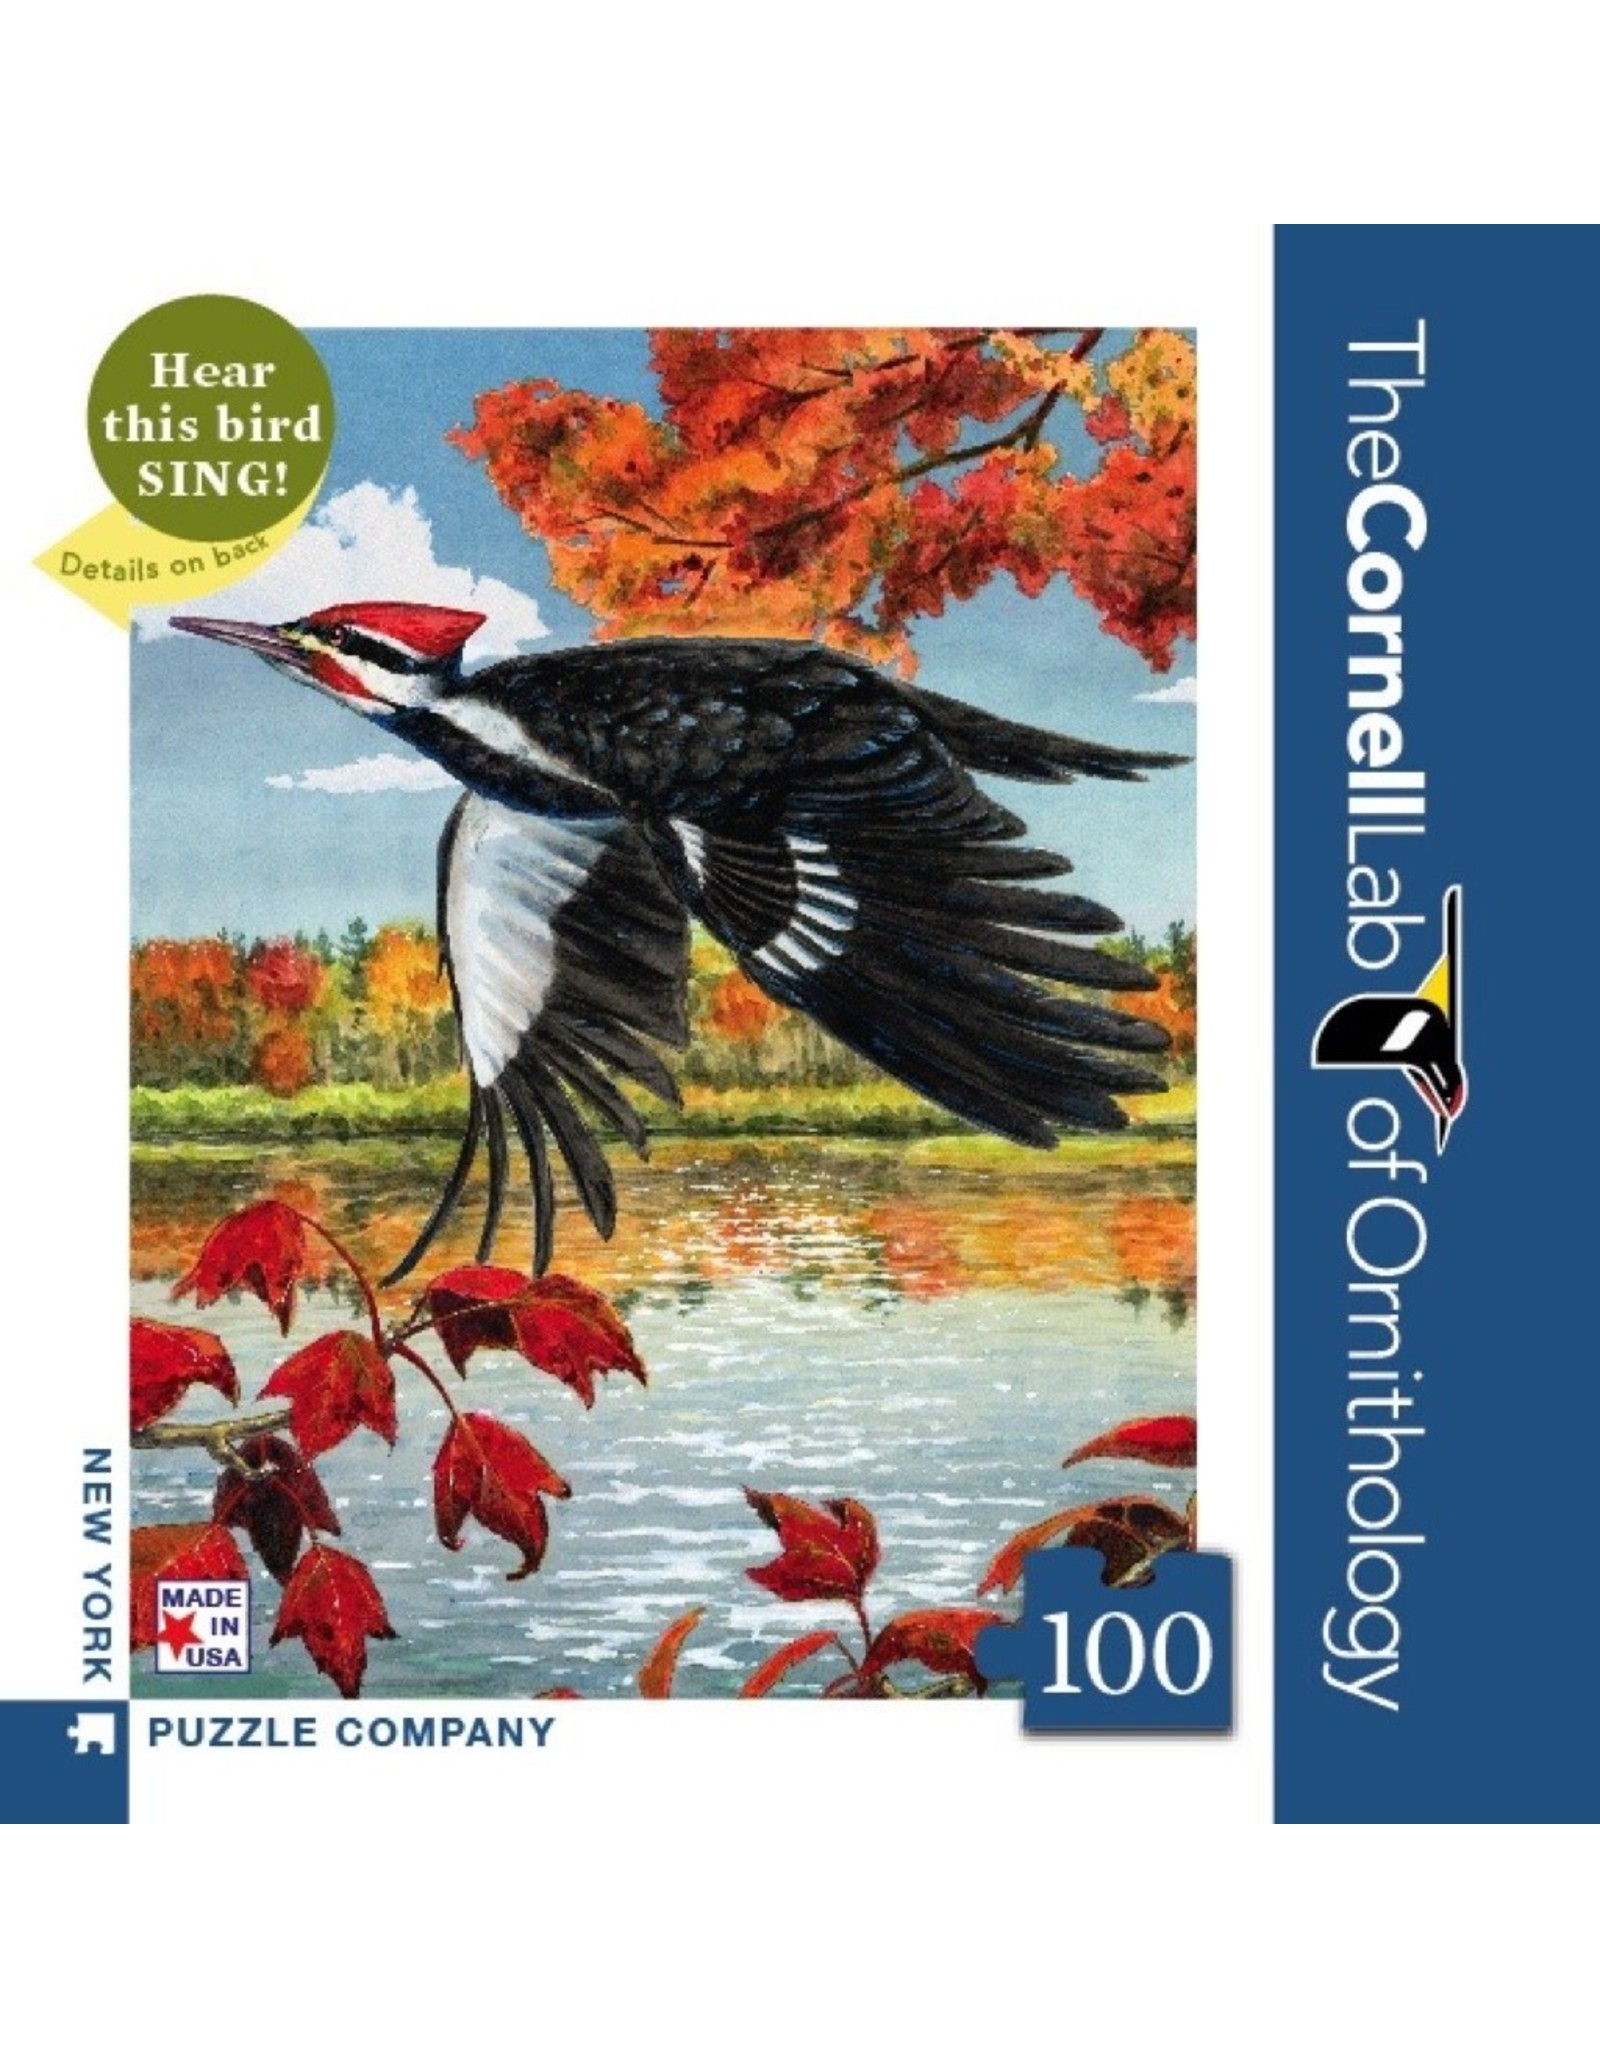 New York Puzzle Co Pileated Woodpecker Mini 100pc